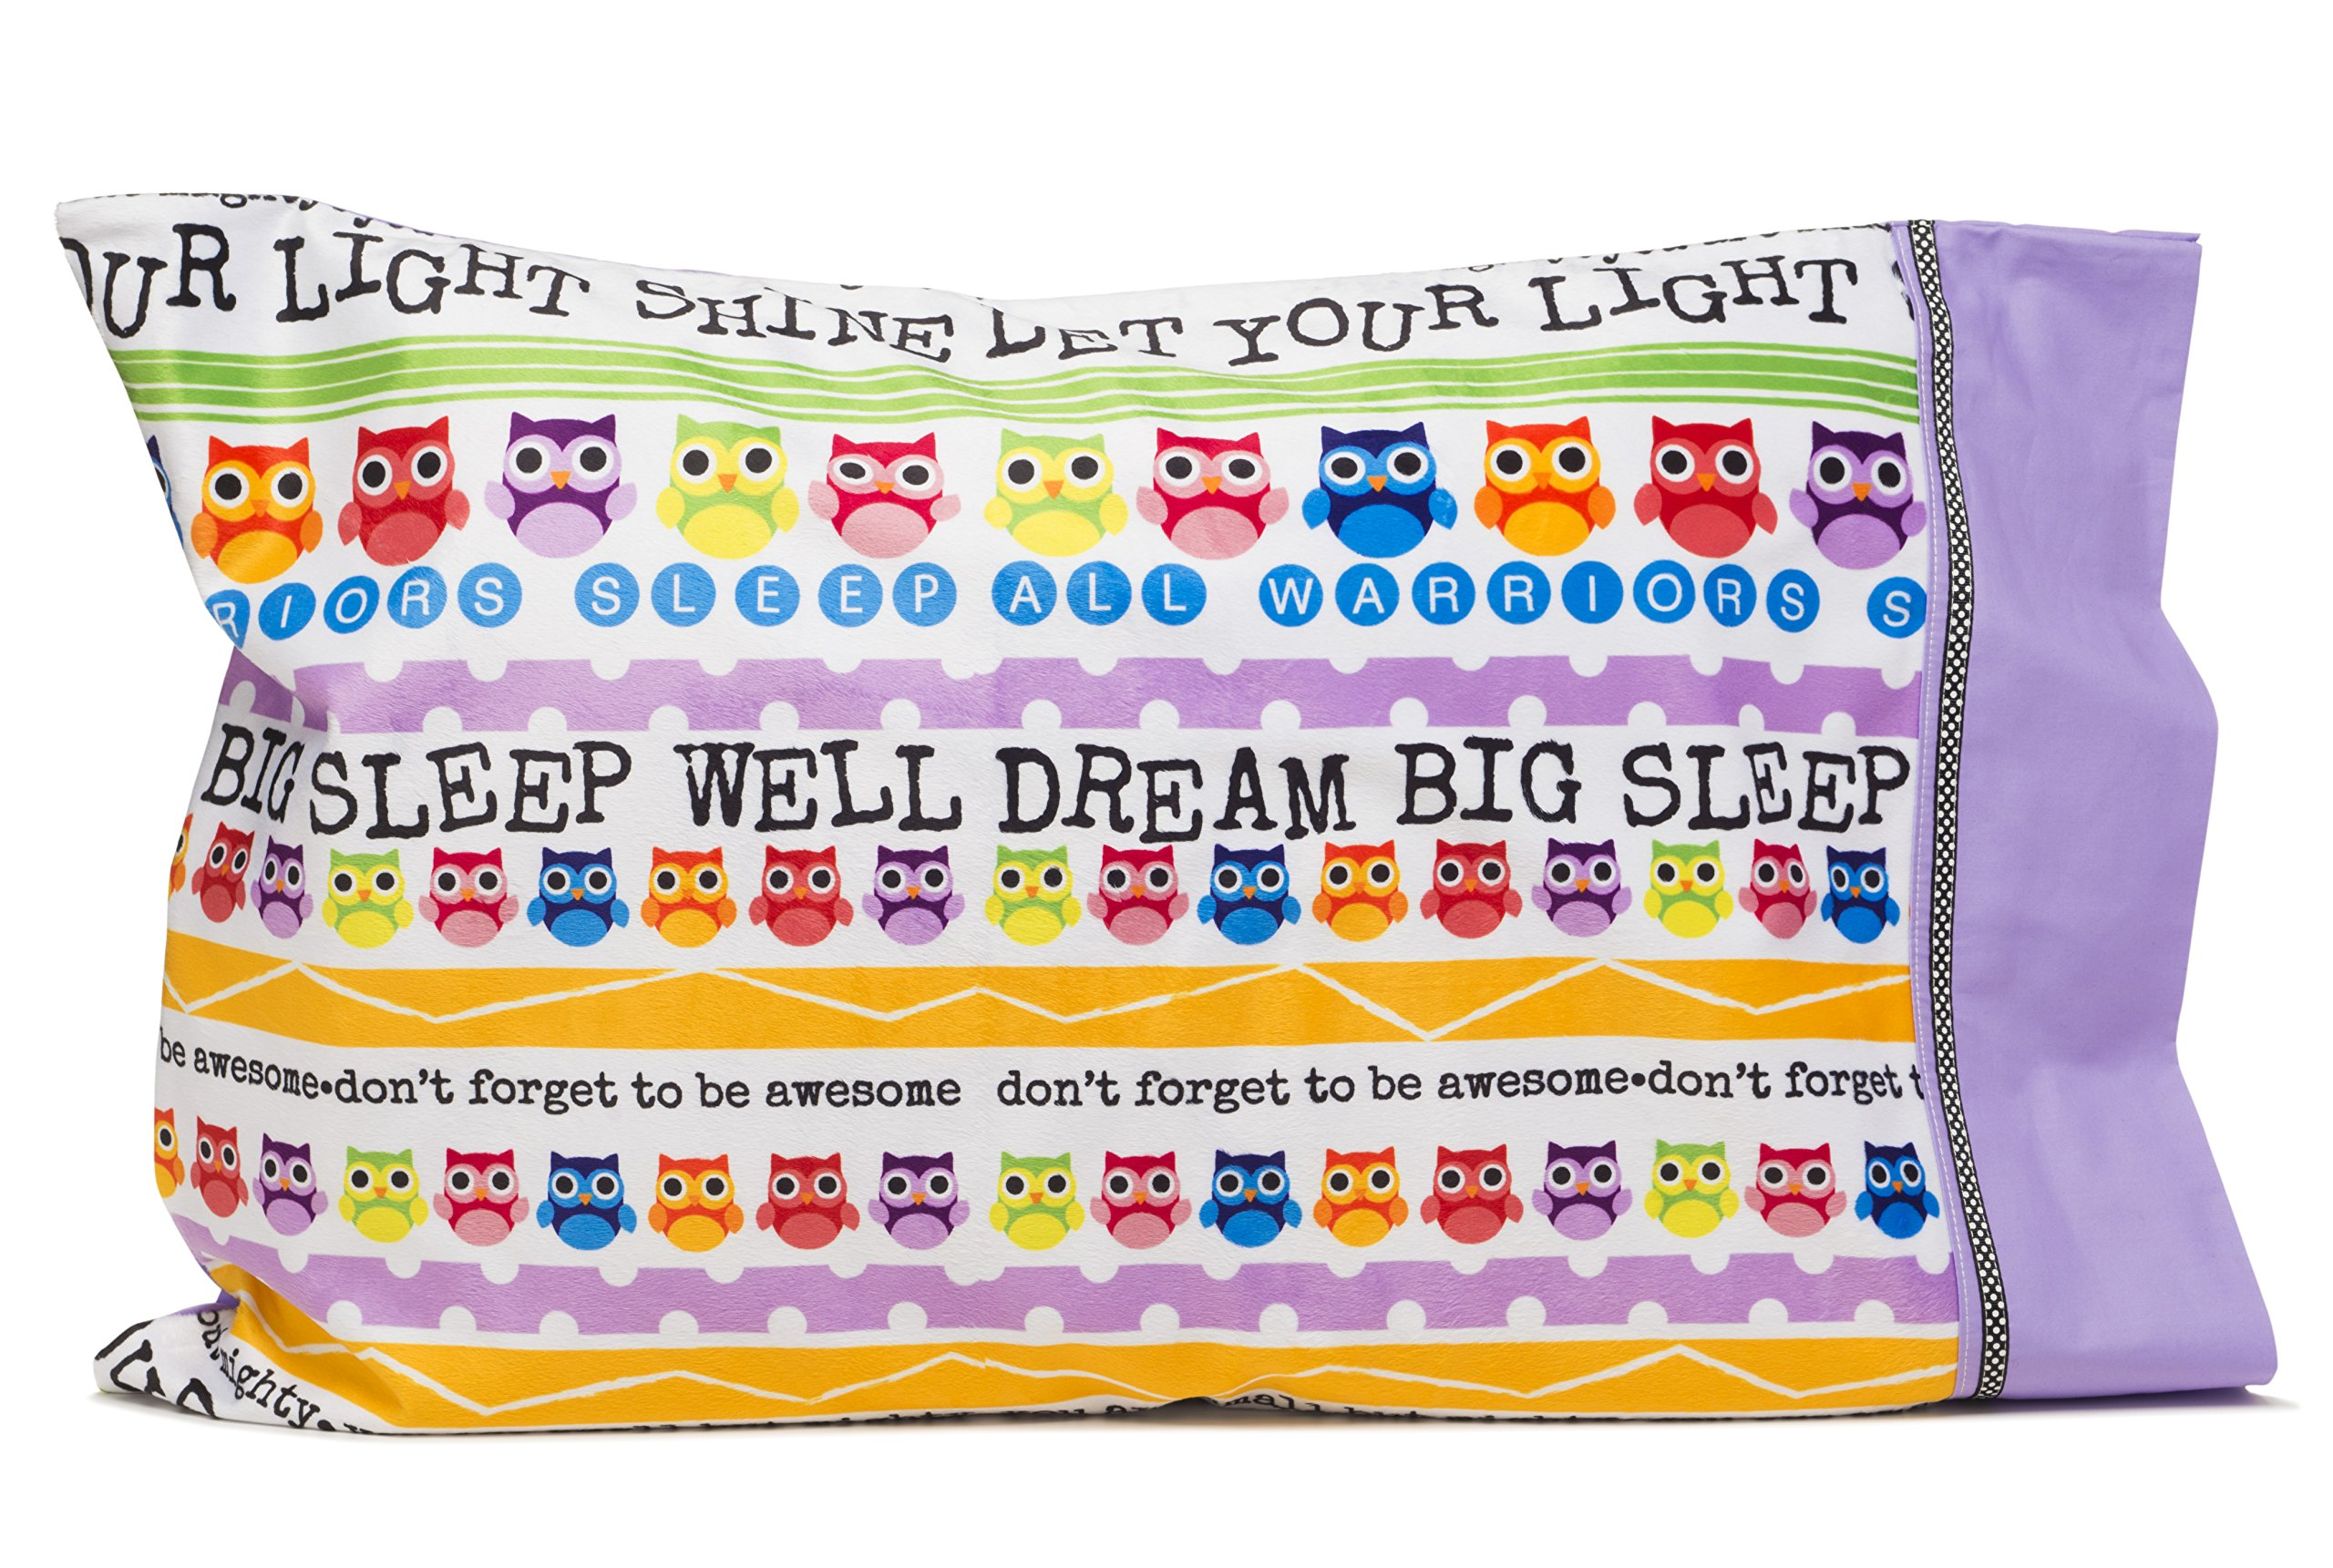 Slumber Party Supplies - Owl Pillowcase - Personalize your LET YOUR LIGHT SHINE pillowcase - Fun gifts for kids and teens- Super cute pillowcase - Christian gifts for kids by Flipside Pillow